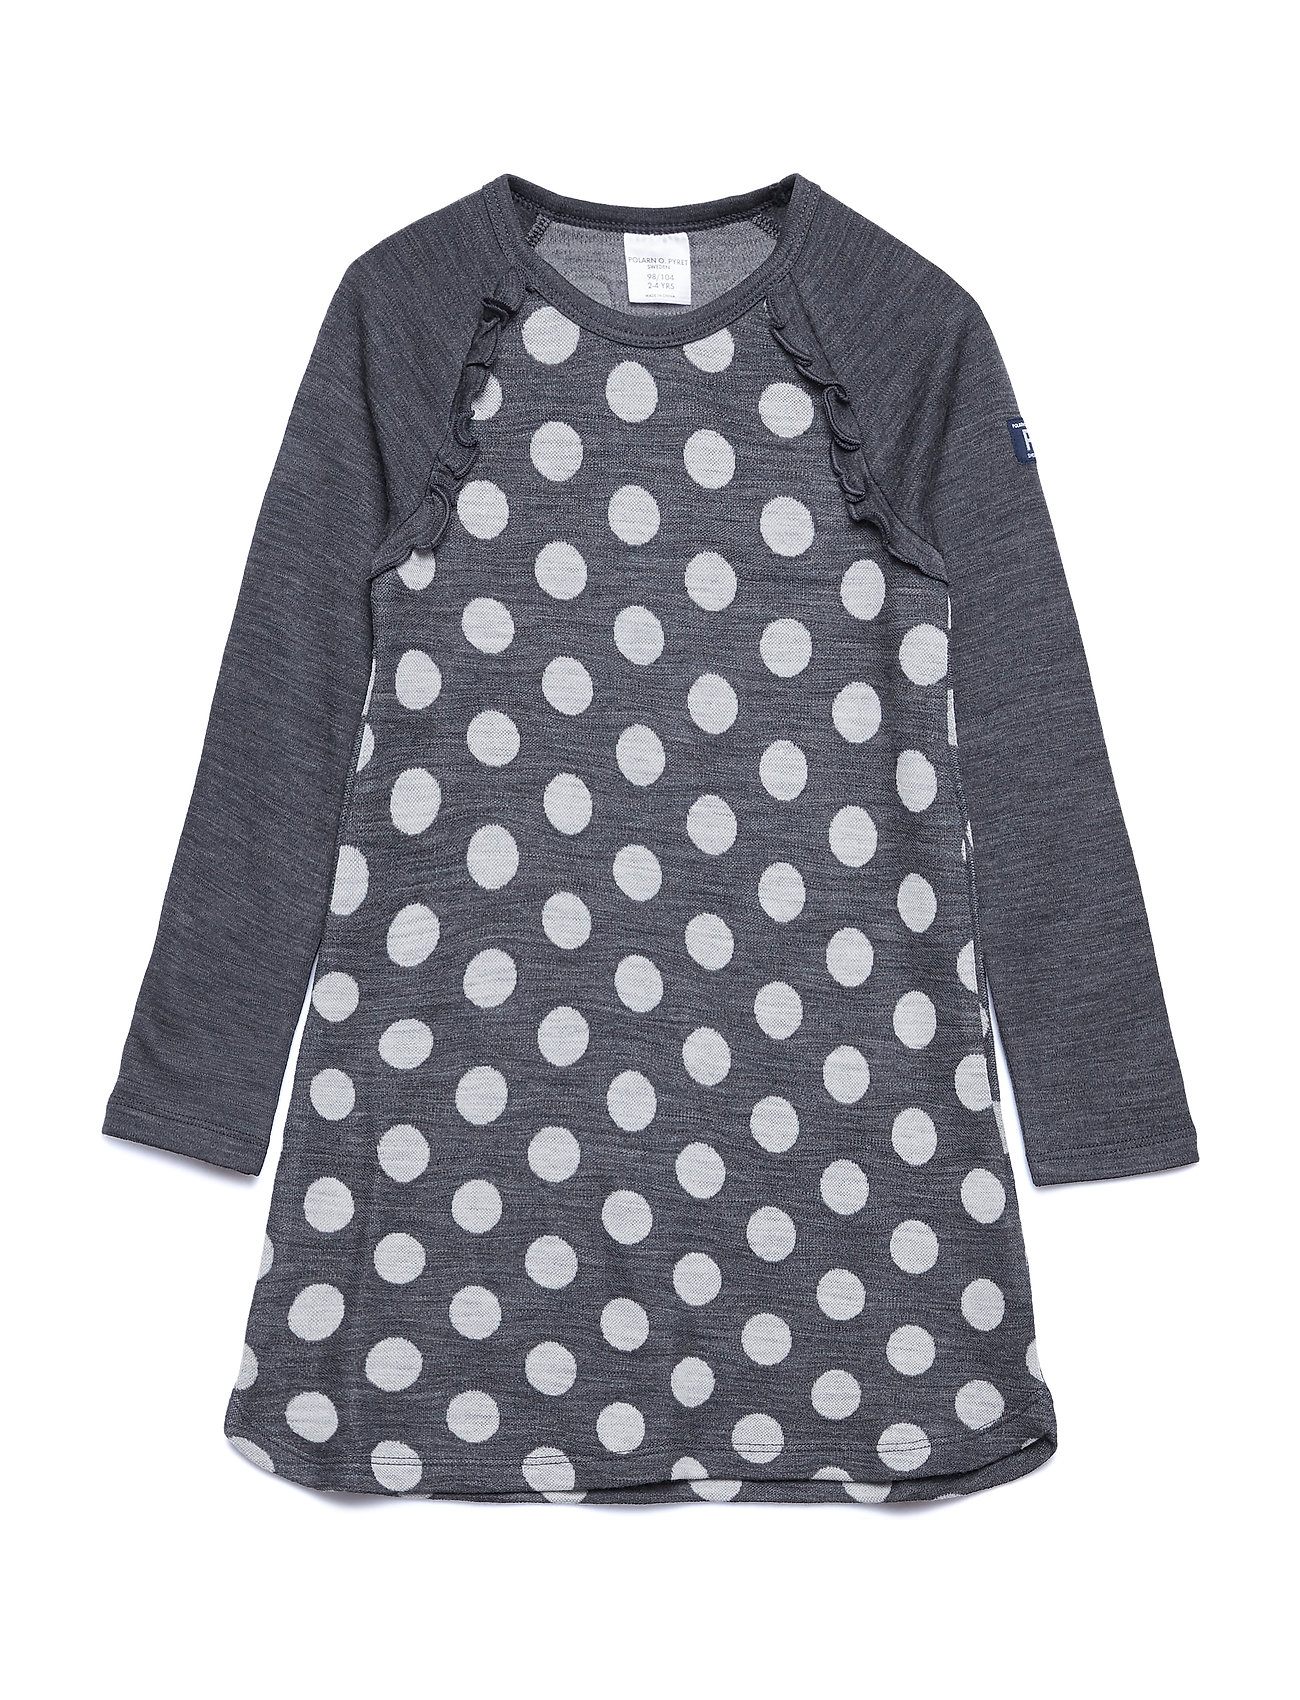 Polarn O. Pyret Dress Long Sleeve Wool Solid PreSchool